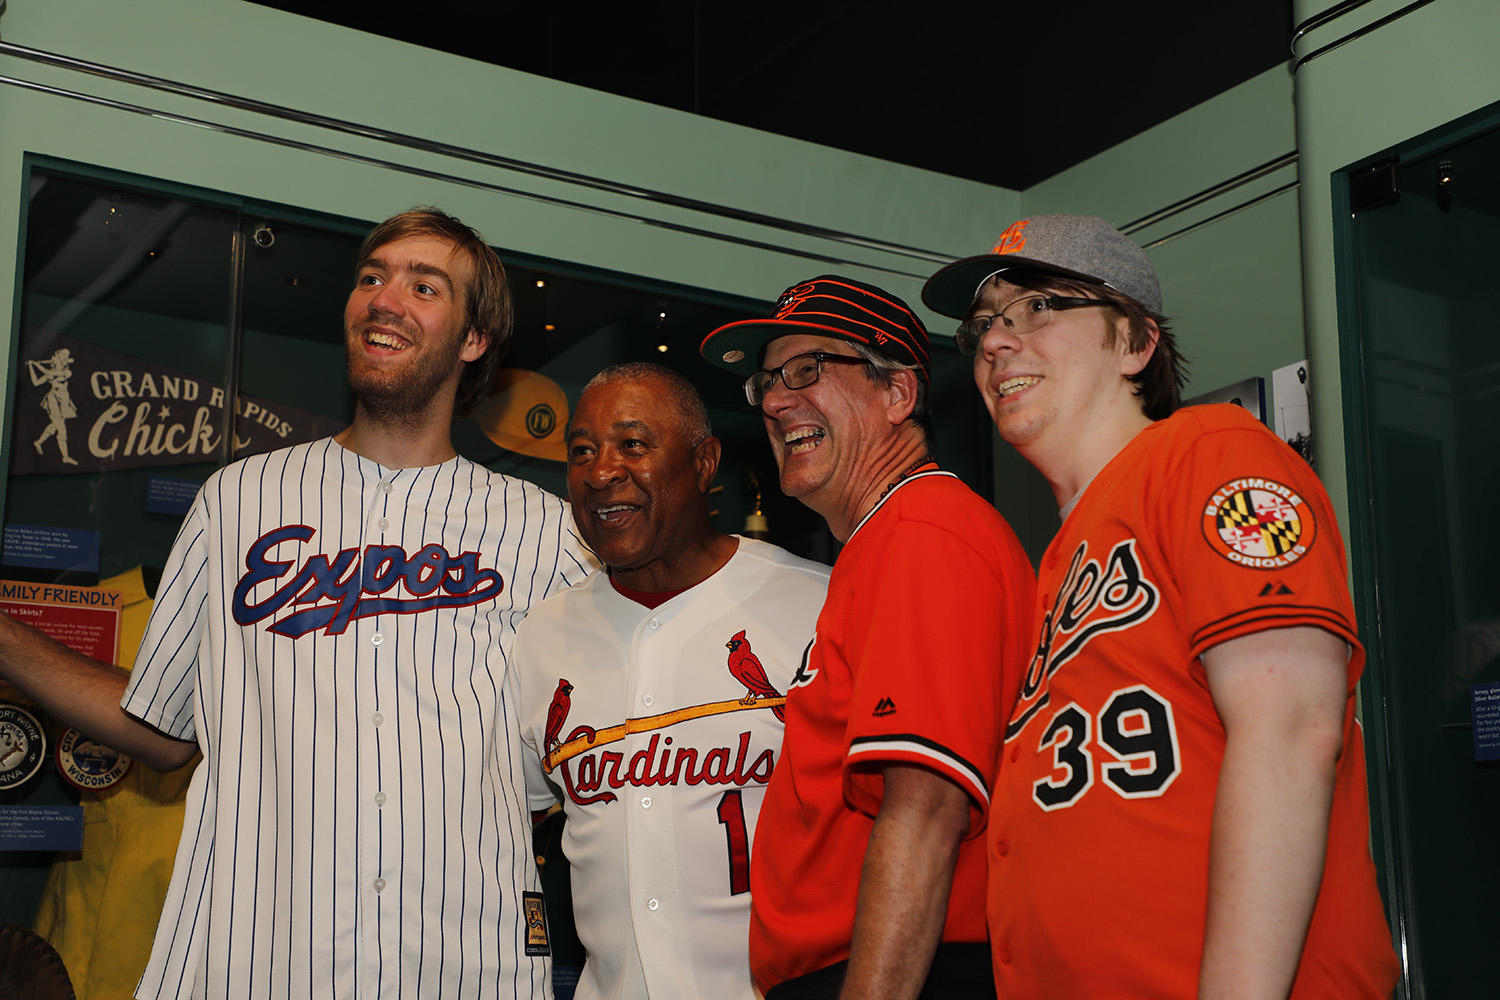 Ozzie Smith poses with fans for a photograph during the 2017 <em>Night at the Museum</em> event at the Hall of Fame Classic. (Milo Stewart Jr./National Baseball Hall of Fame and Museum)